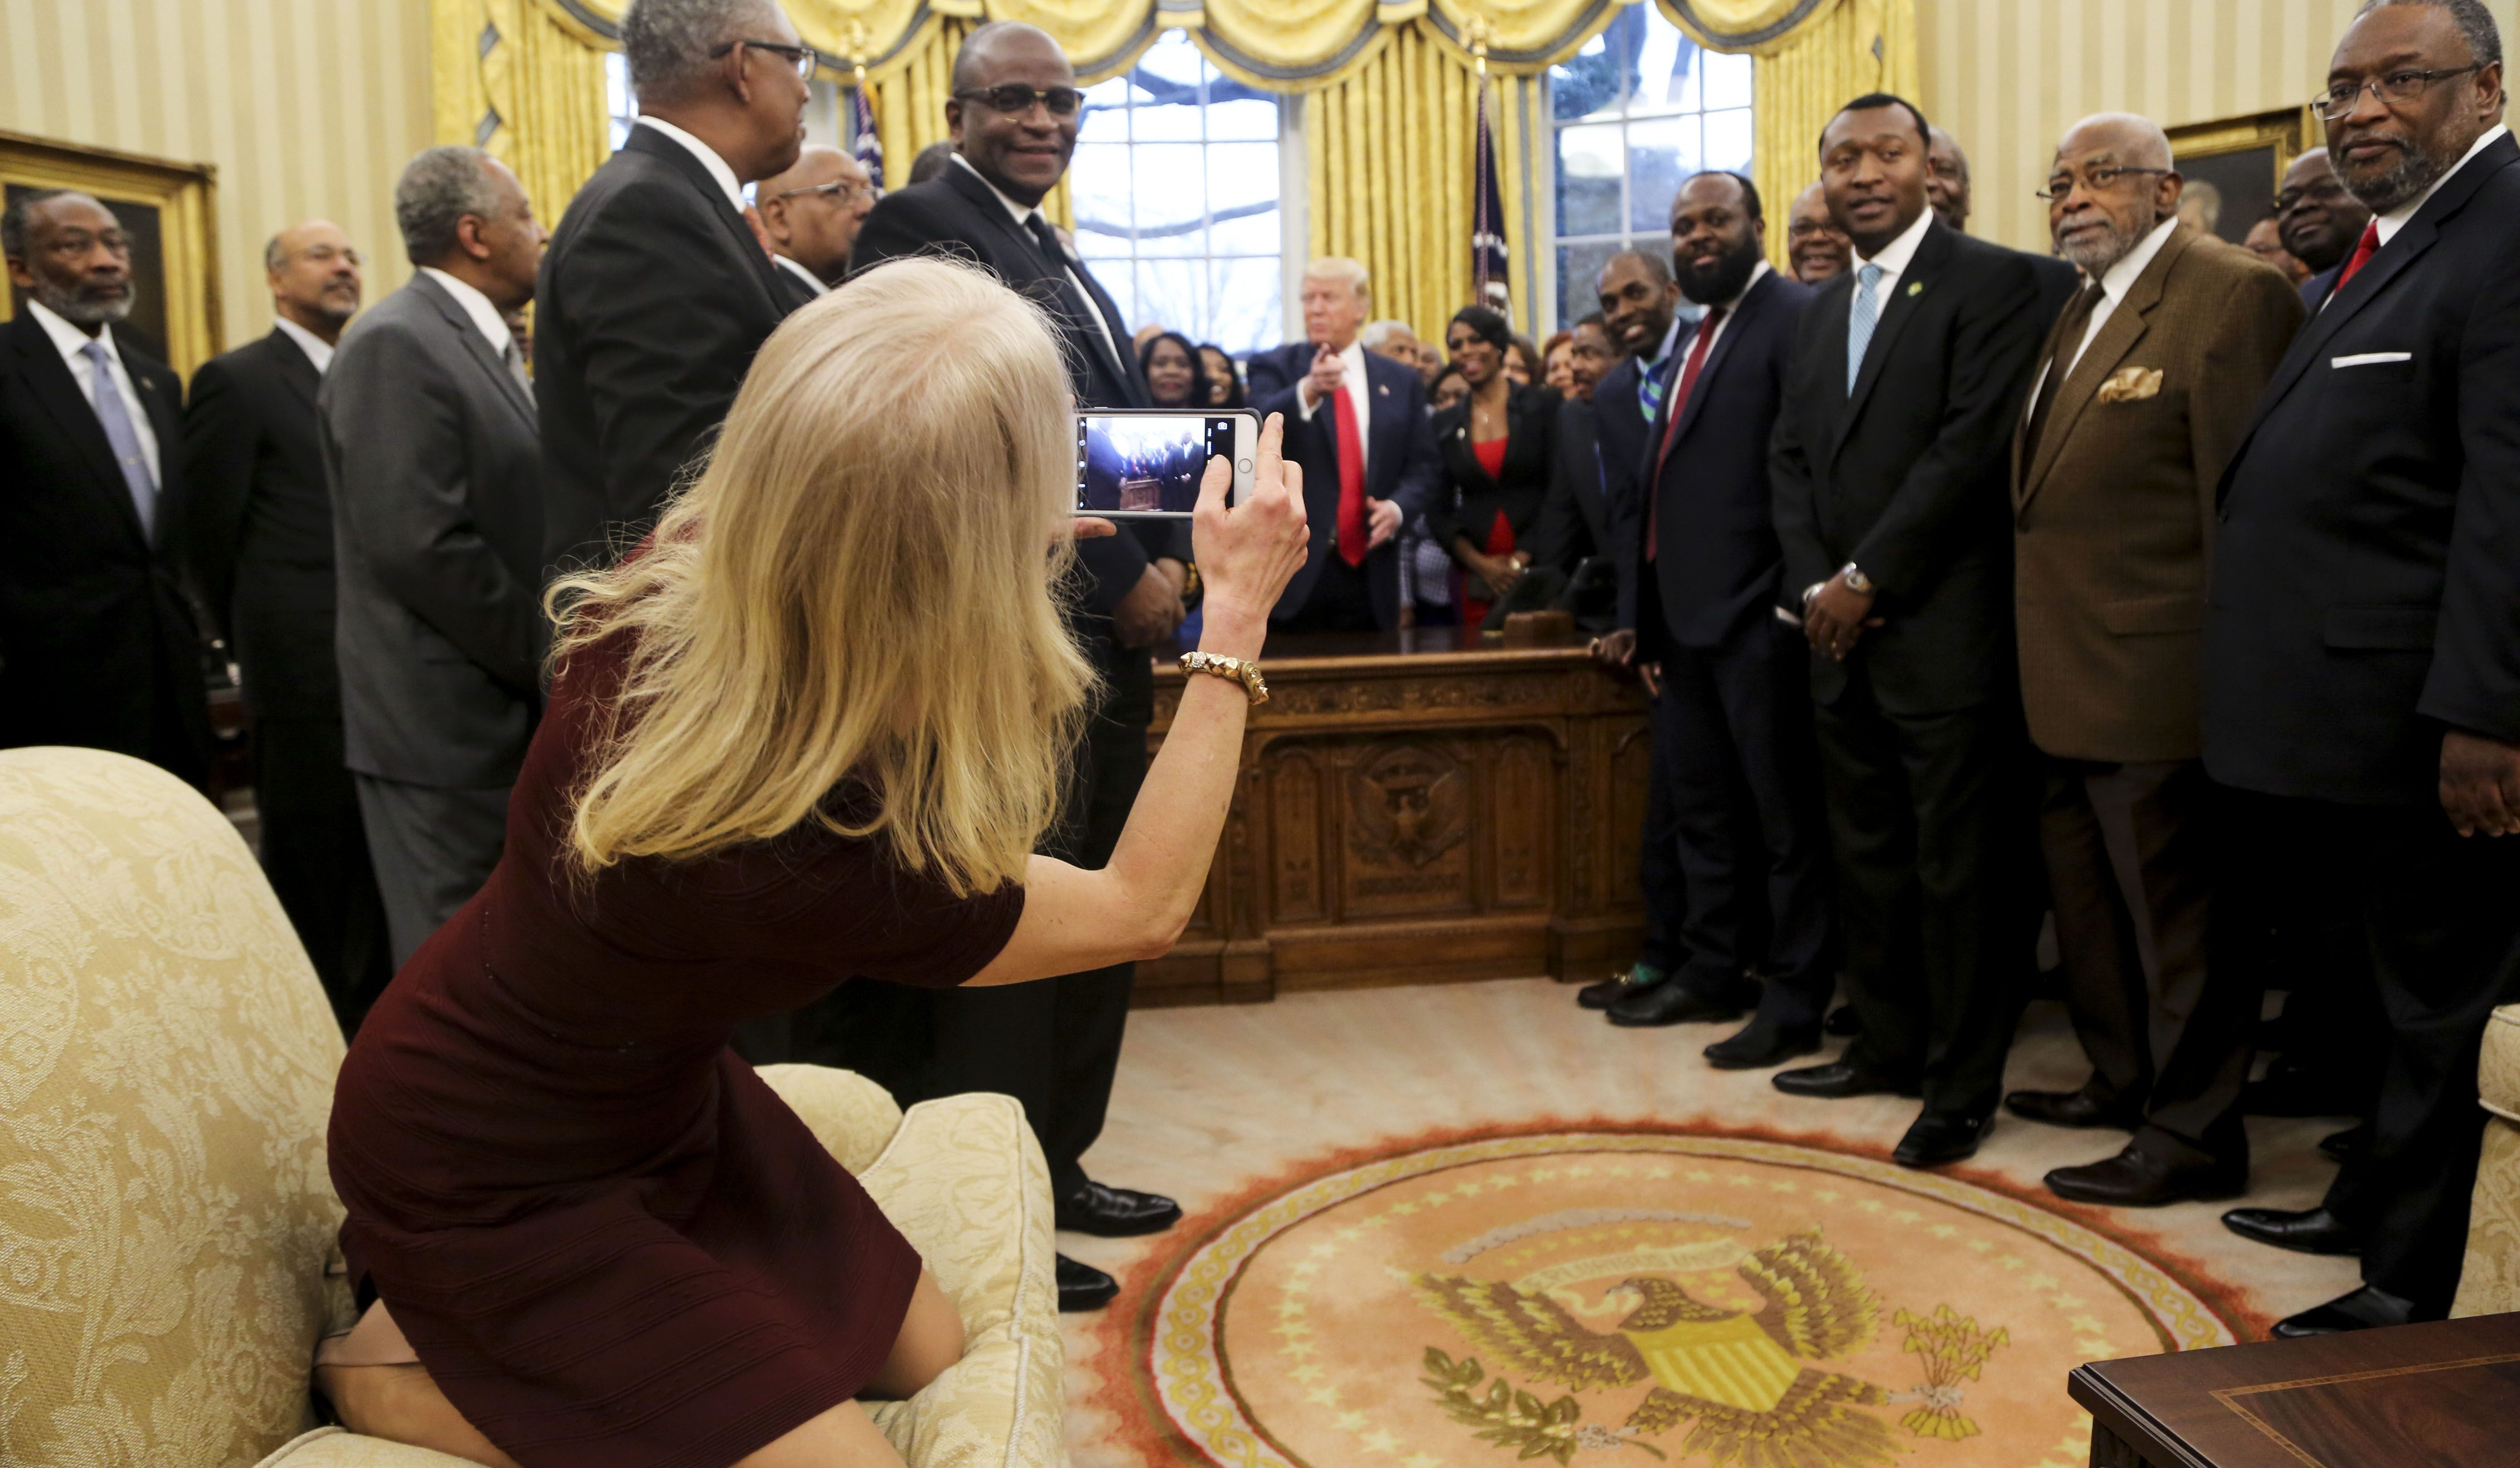 Kellyanne Conway Wh Sofa Shoes High Heels